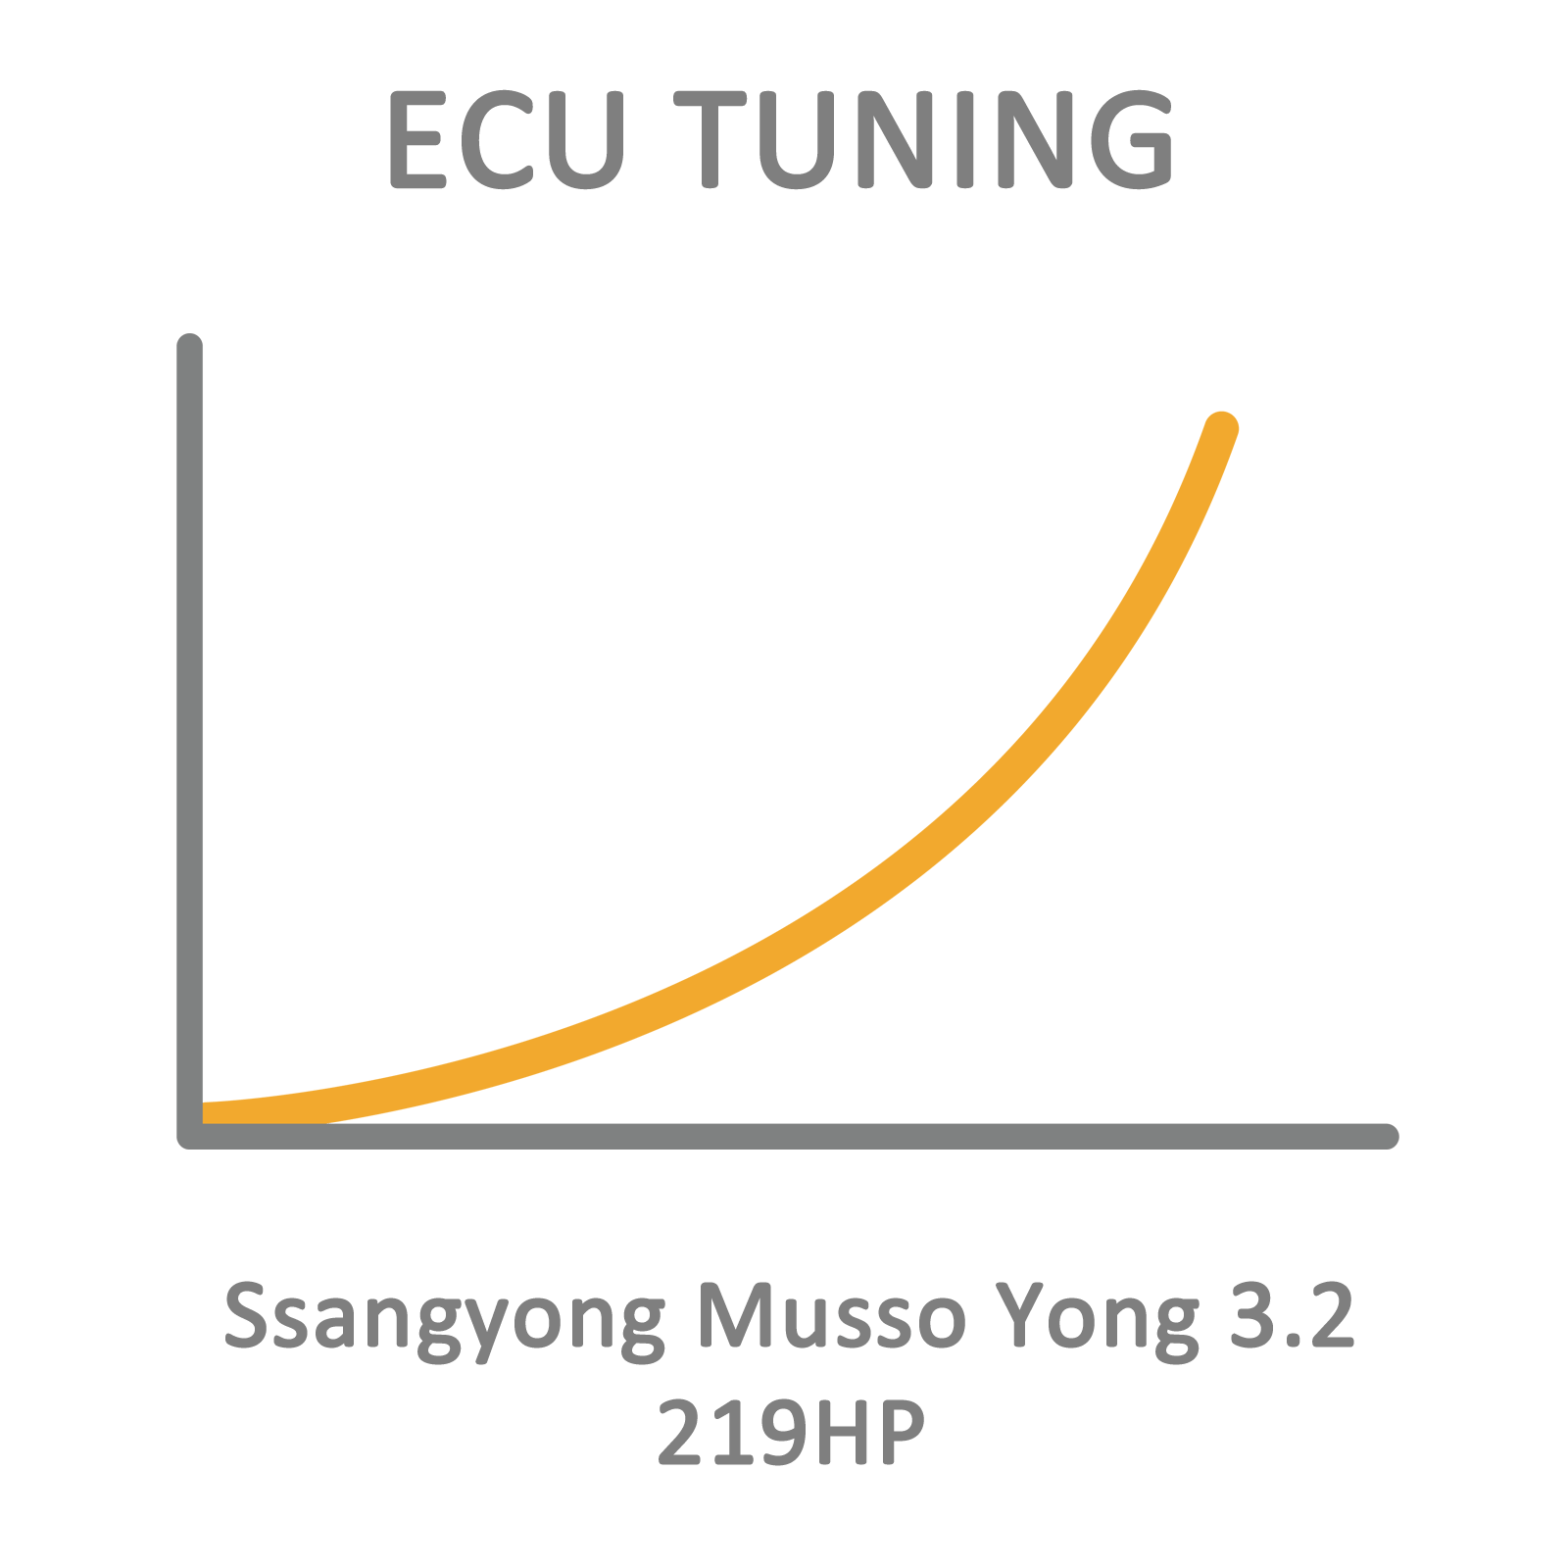 Ssangyong Musso Yong 3.2 219HP ECU Tuning Remapping